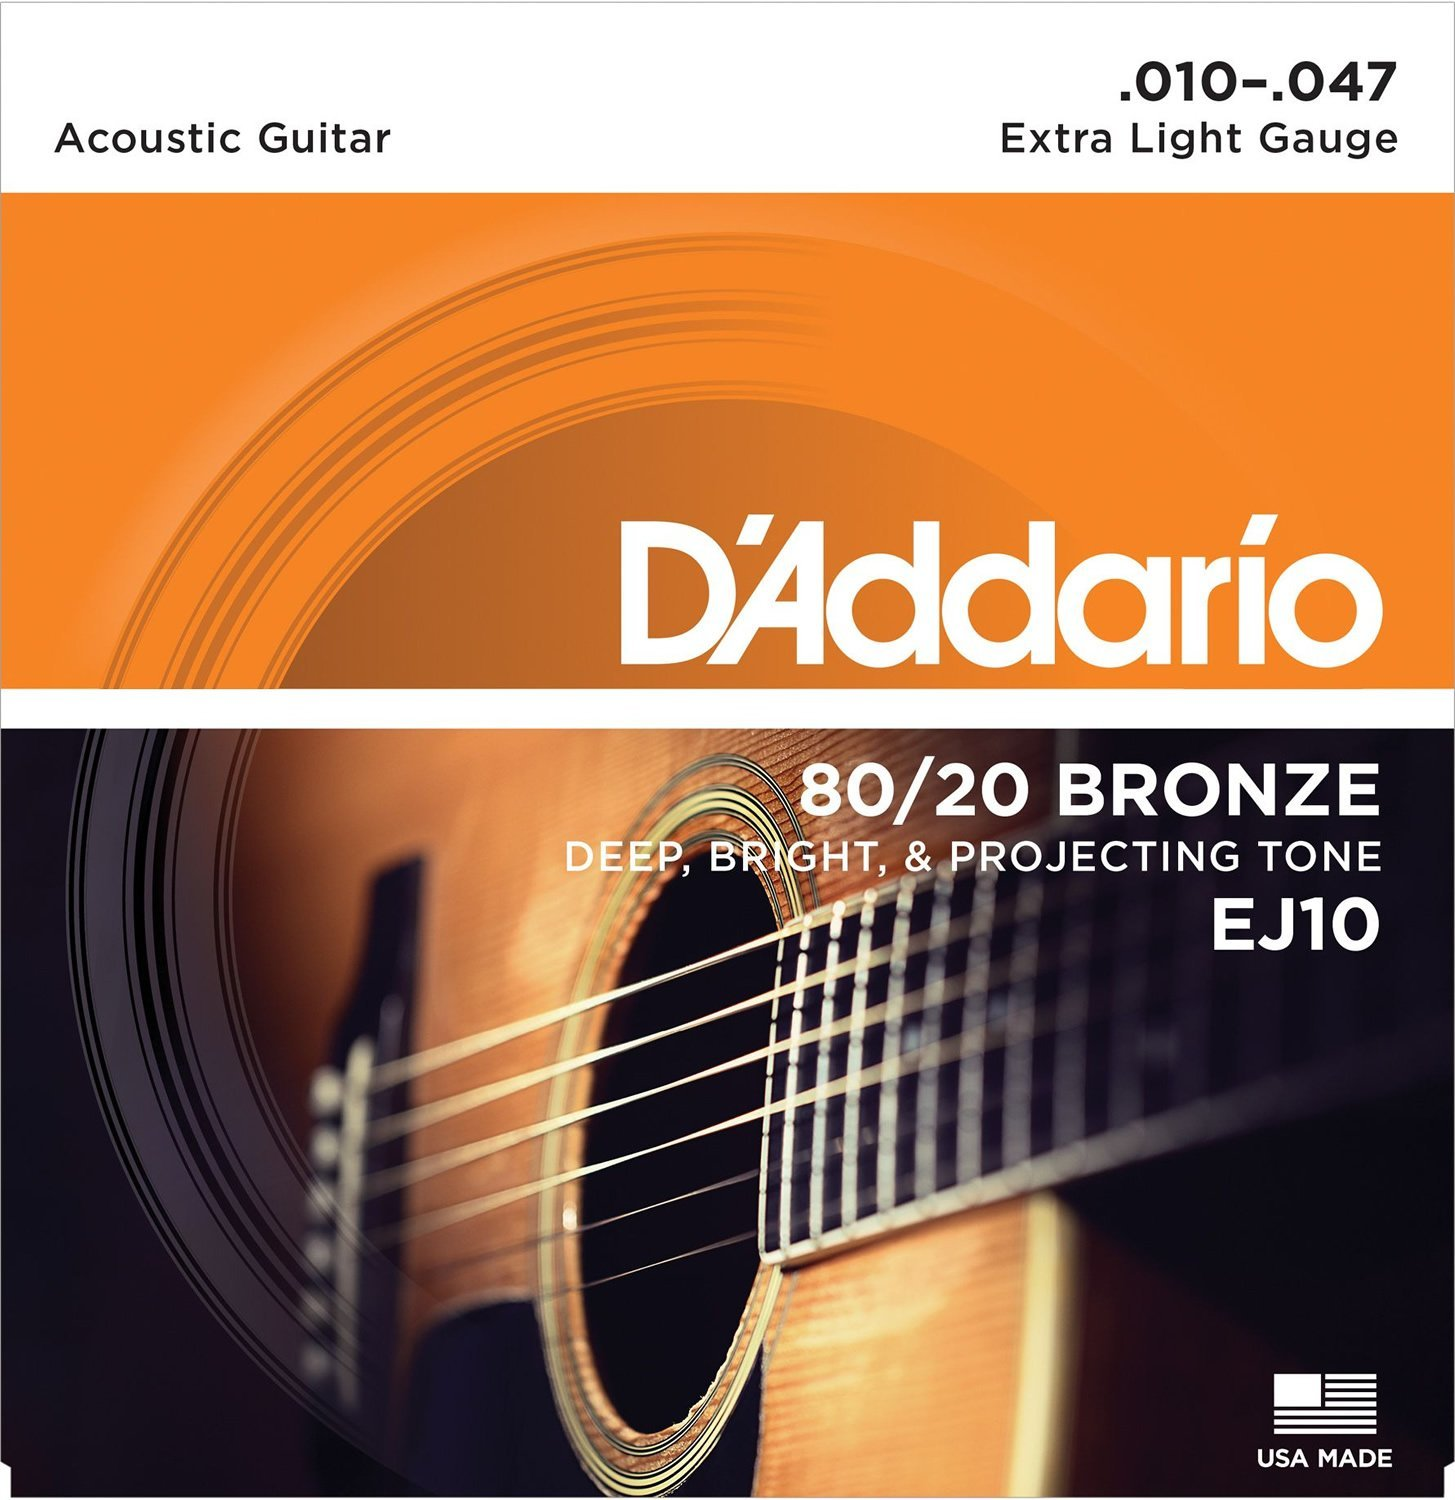 D Addario EJ10 80/20 Bronze Acoustic Guitar Strings, Extra Light, 10-47